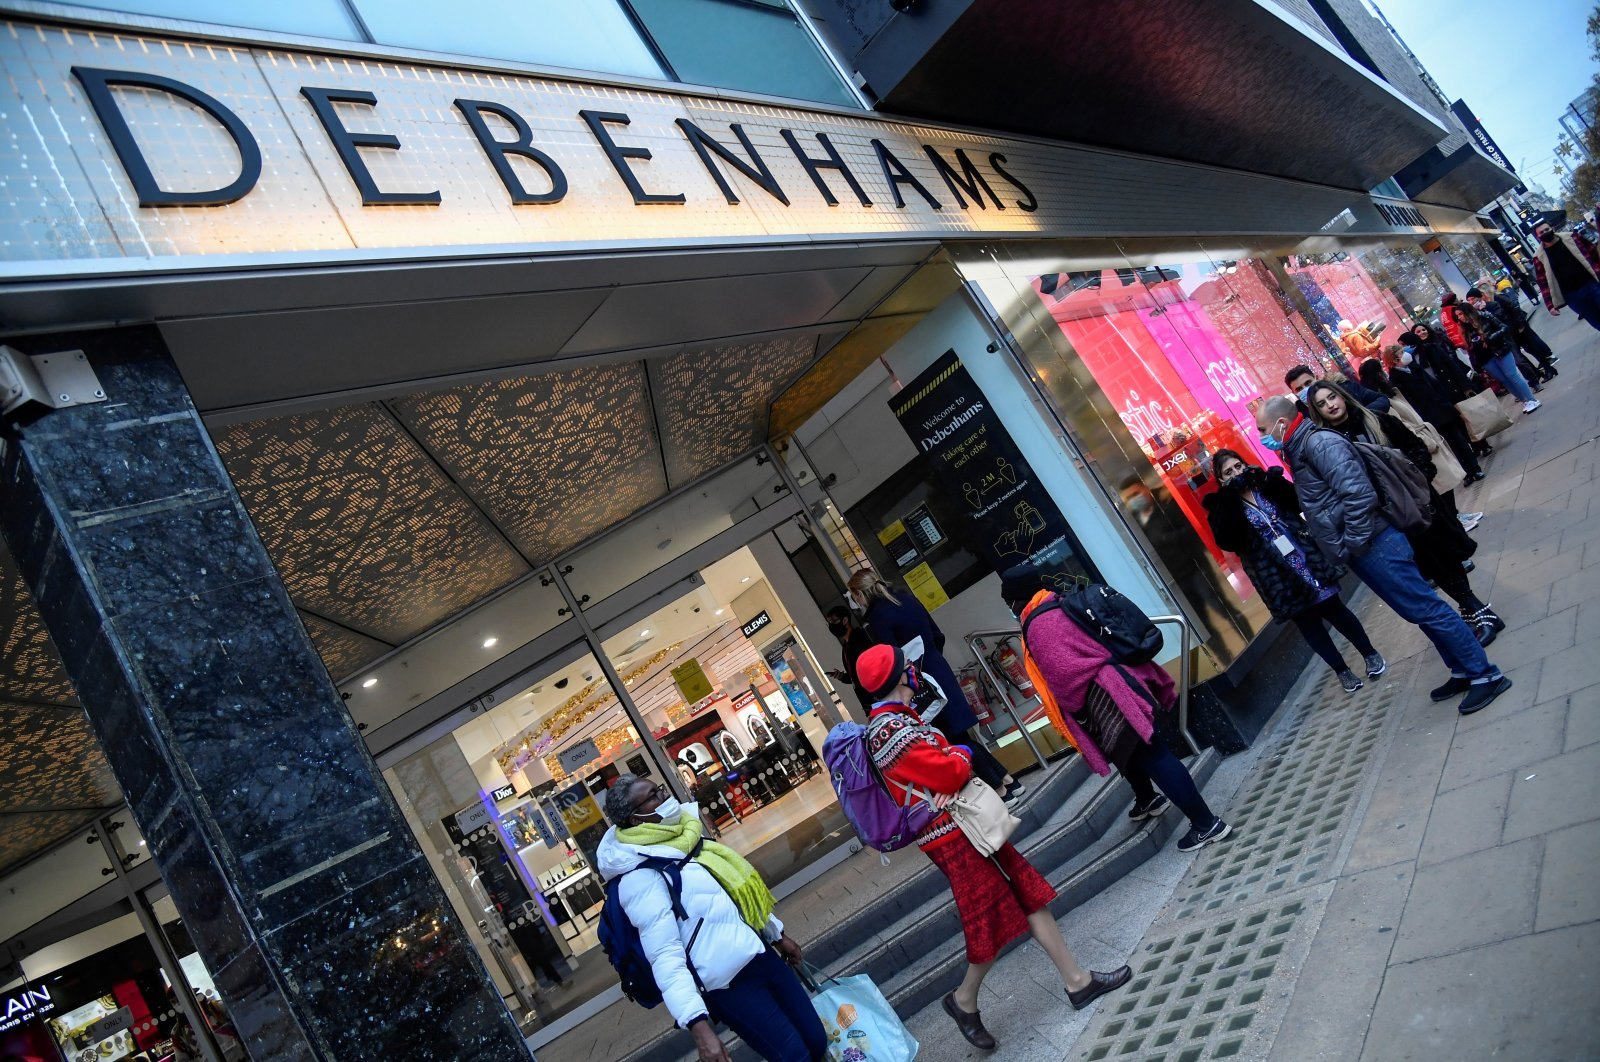 Shoppers queue to enter a Debenhams store On Oxford Street as a second lockdown ends during the outbreak of COVID-19, London, Britain, Dec. 2, 2020. (Reuters Photo)